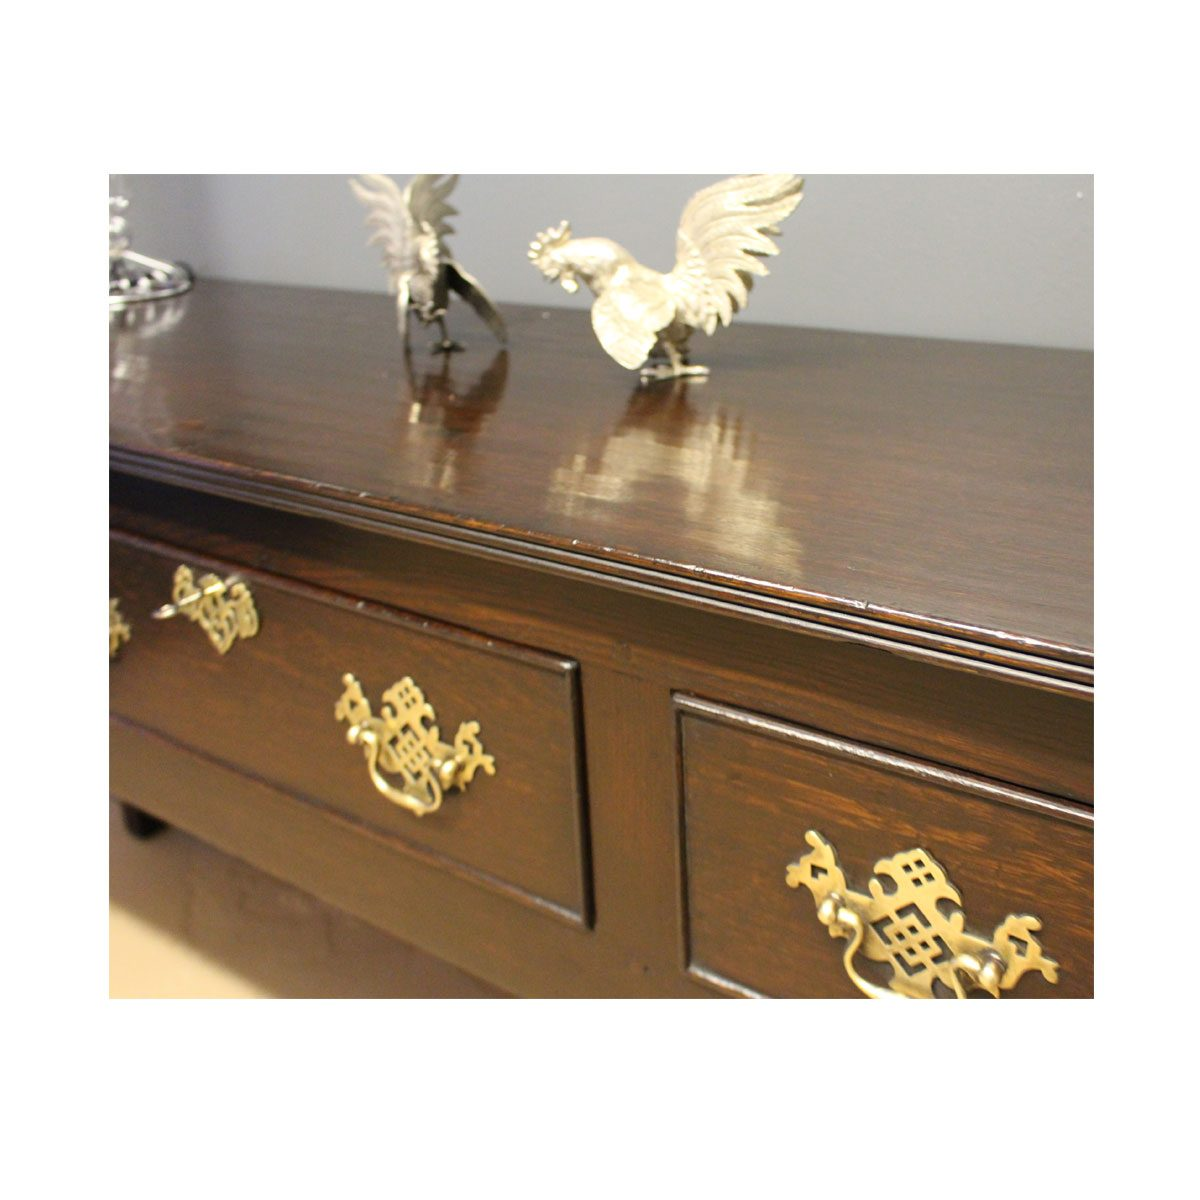 Bespoke Long Melford Open Dresser Handcrafted in Suffolk